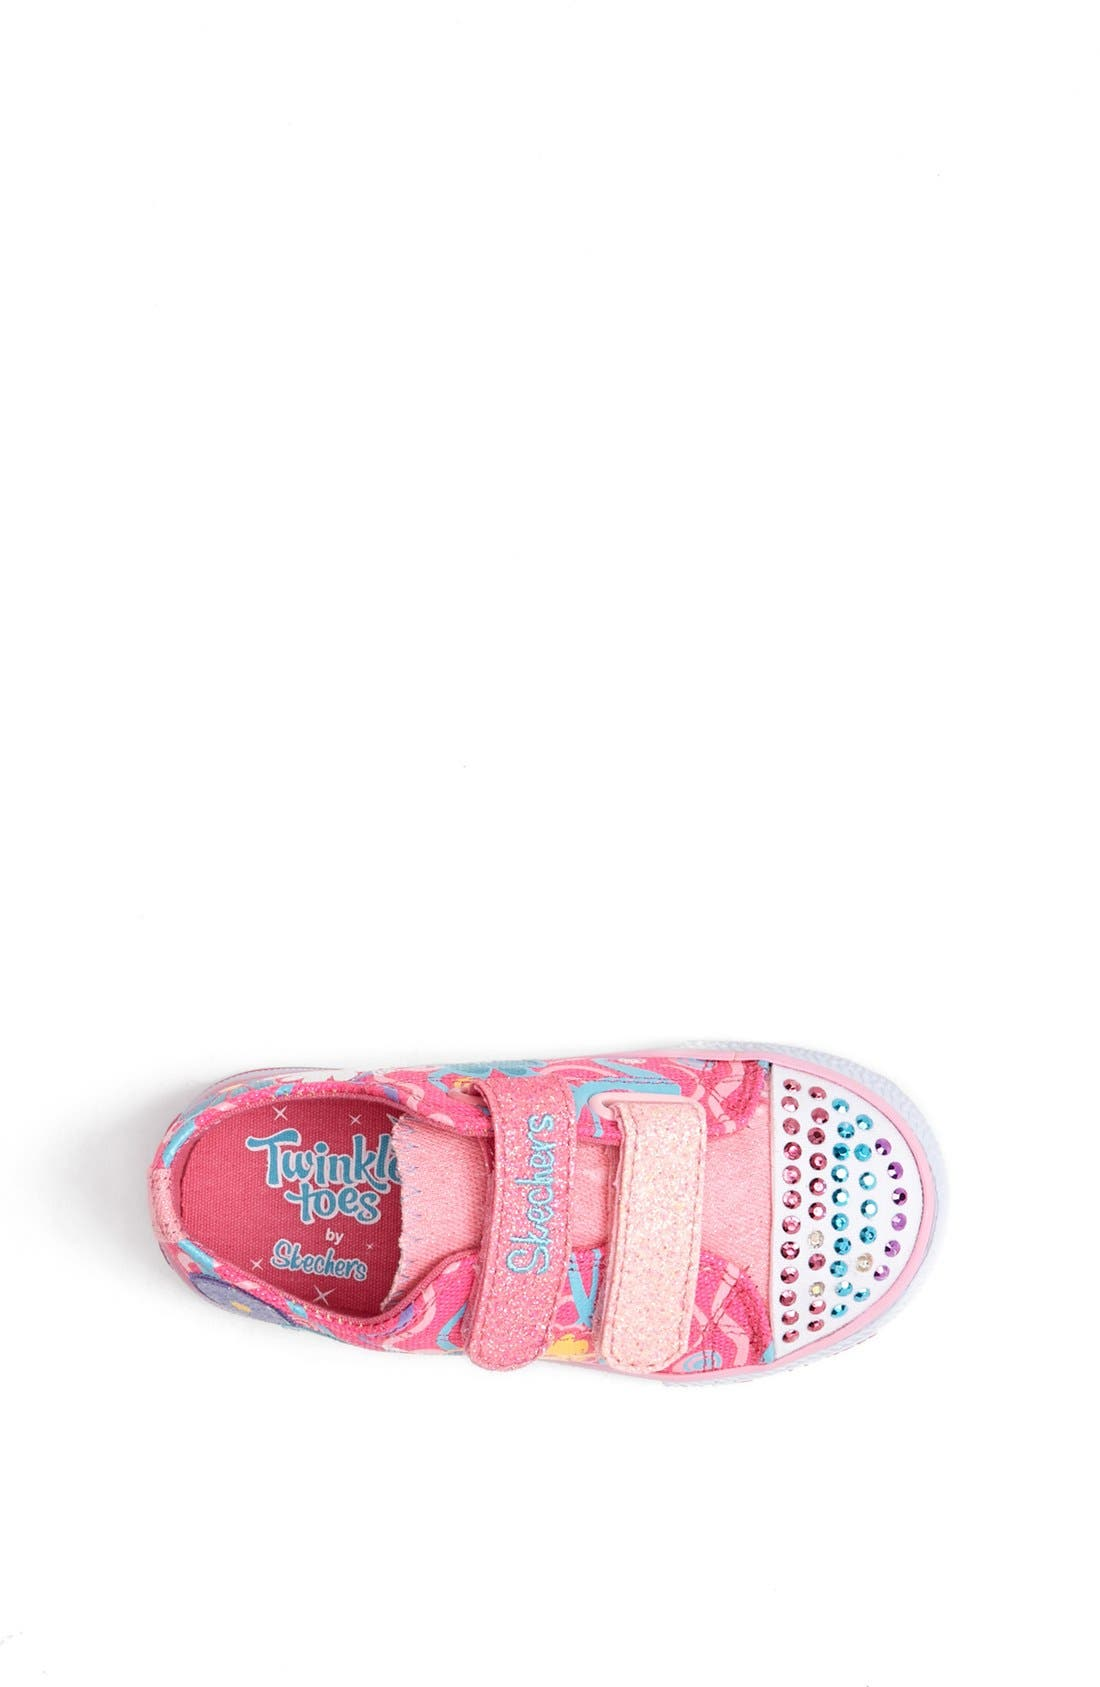 Alternate Image 3  - SKECHERS 'Twinkle Toes - Sweet Talk' Light-Up Sneaker (Walker & Toddler)